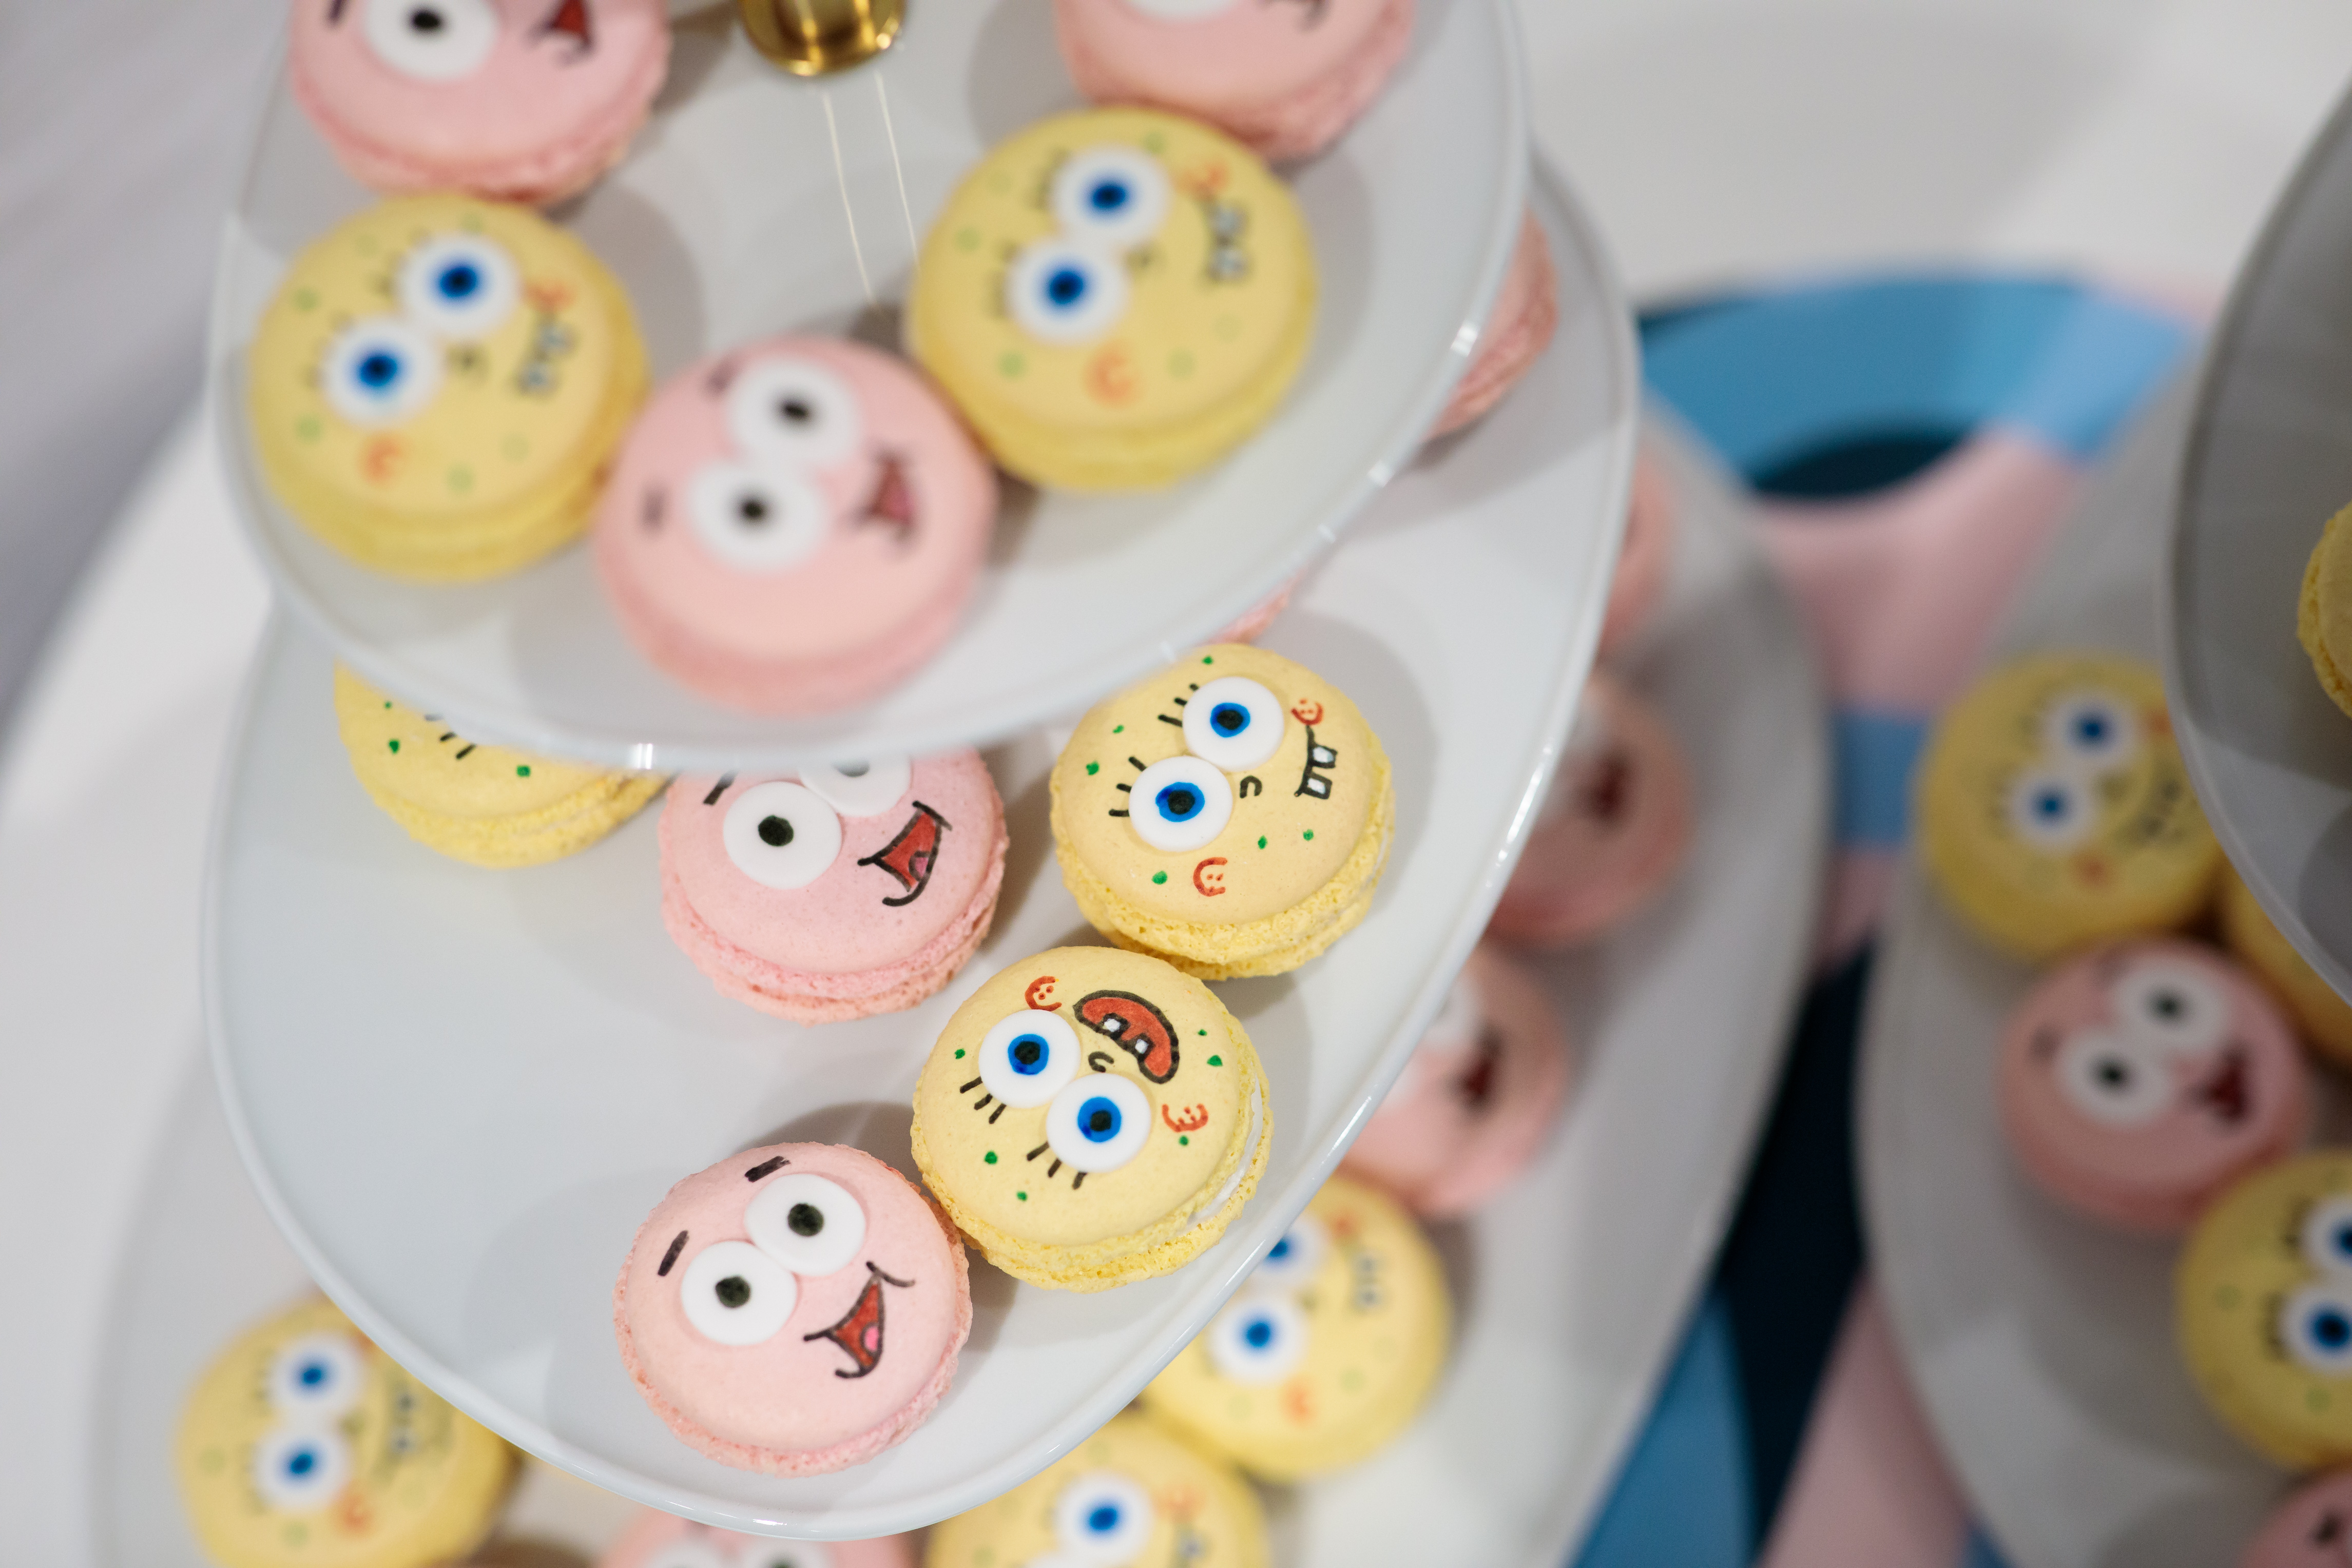 Delicious and pretty looking  Spongebob and Patrick macarons